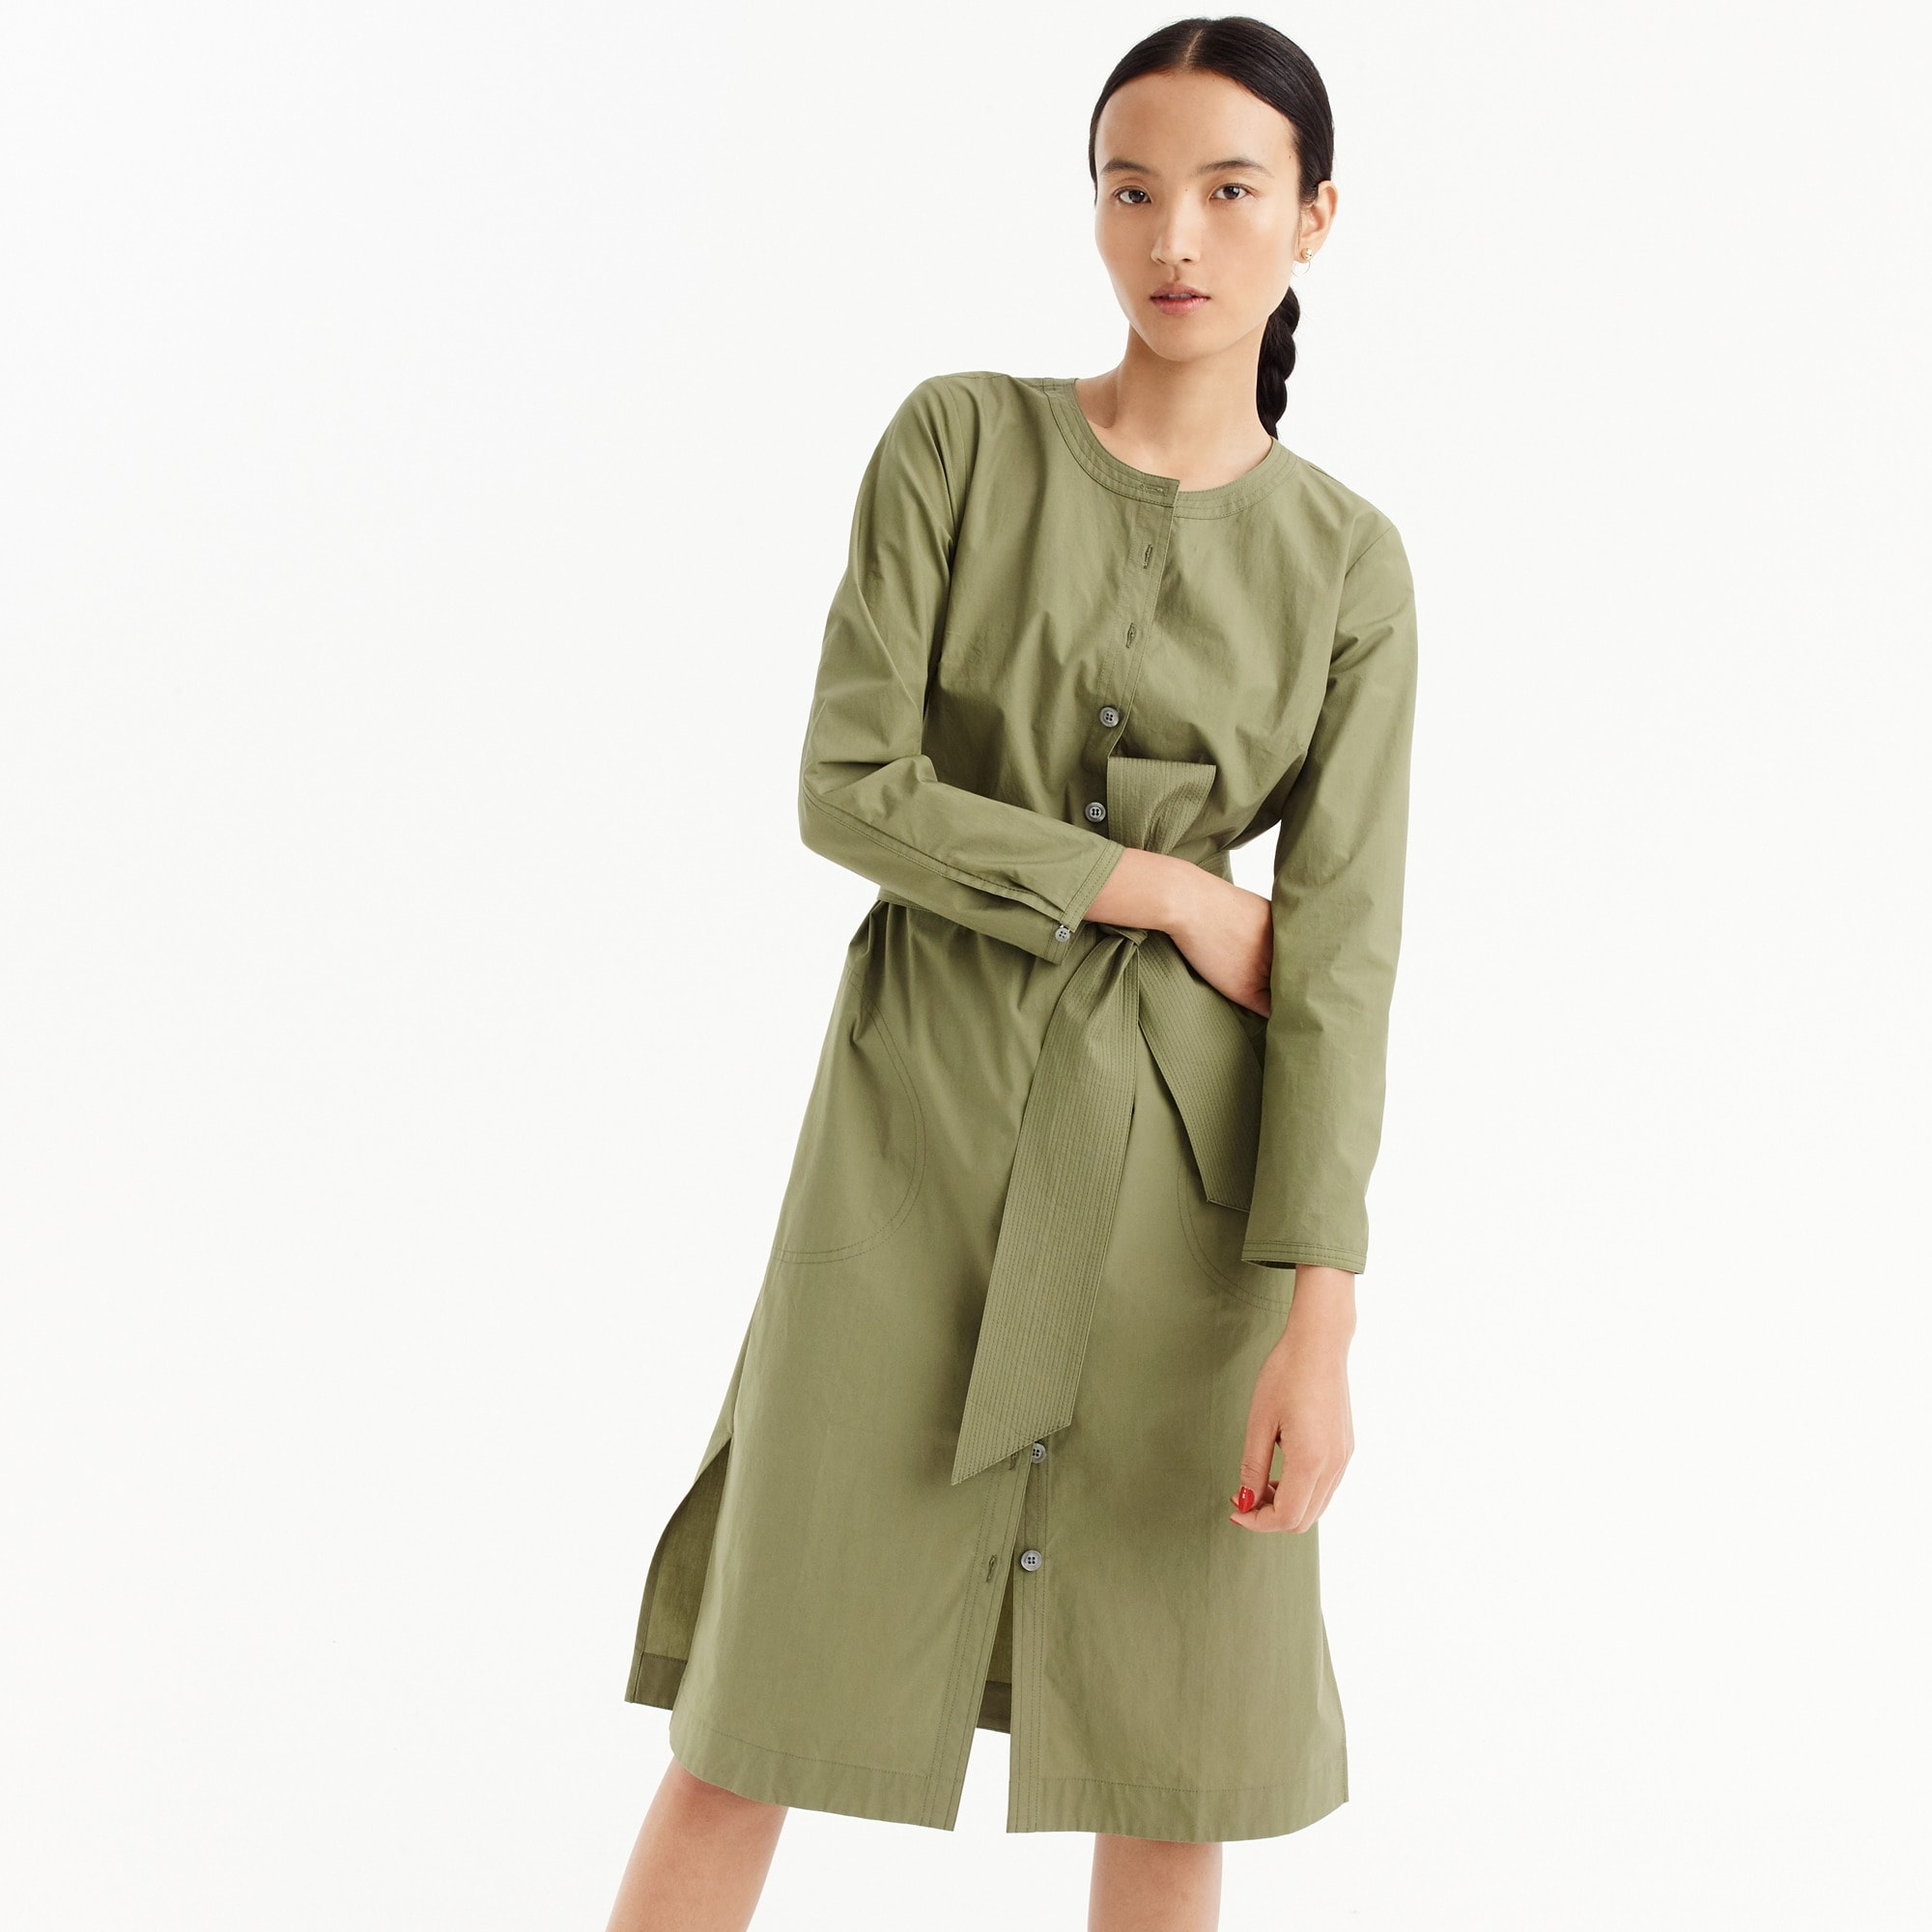 women's petite long-sleeve shirtdress - women's dresses